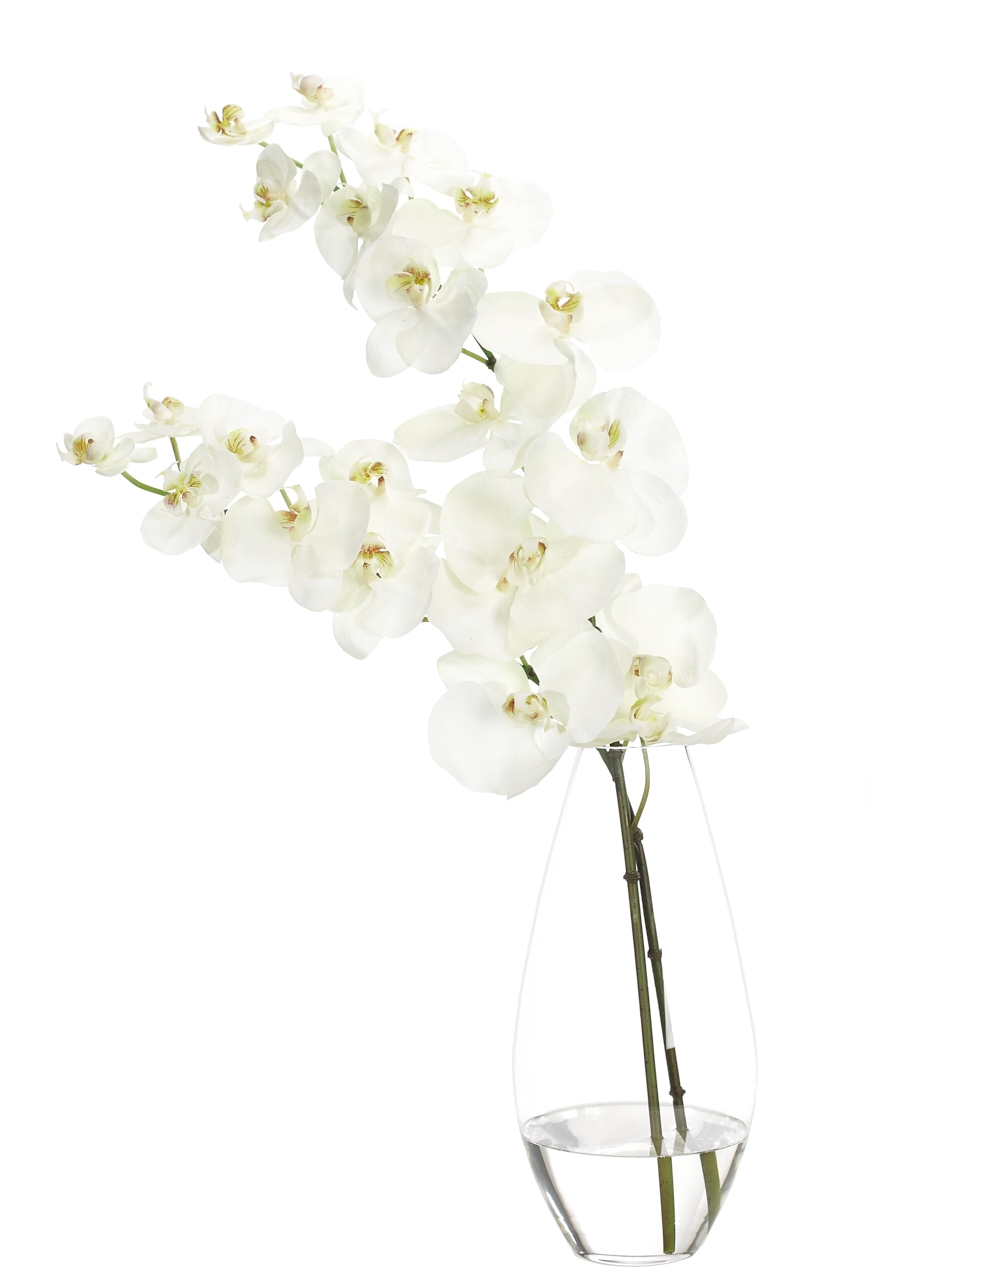 Orchid Phalaenopsis, White, Glass Teardrop Vs, 16wx11dx27h